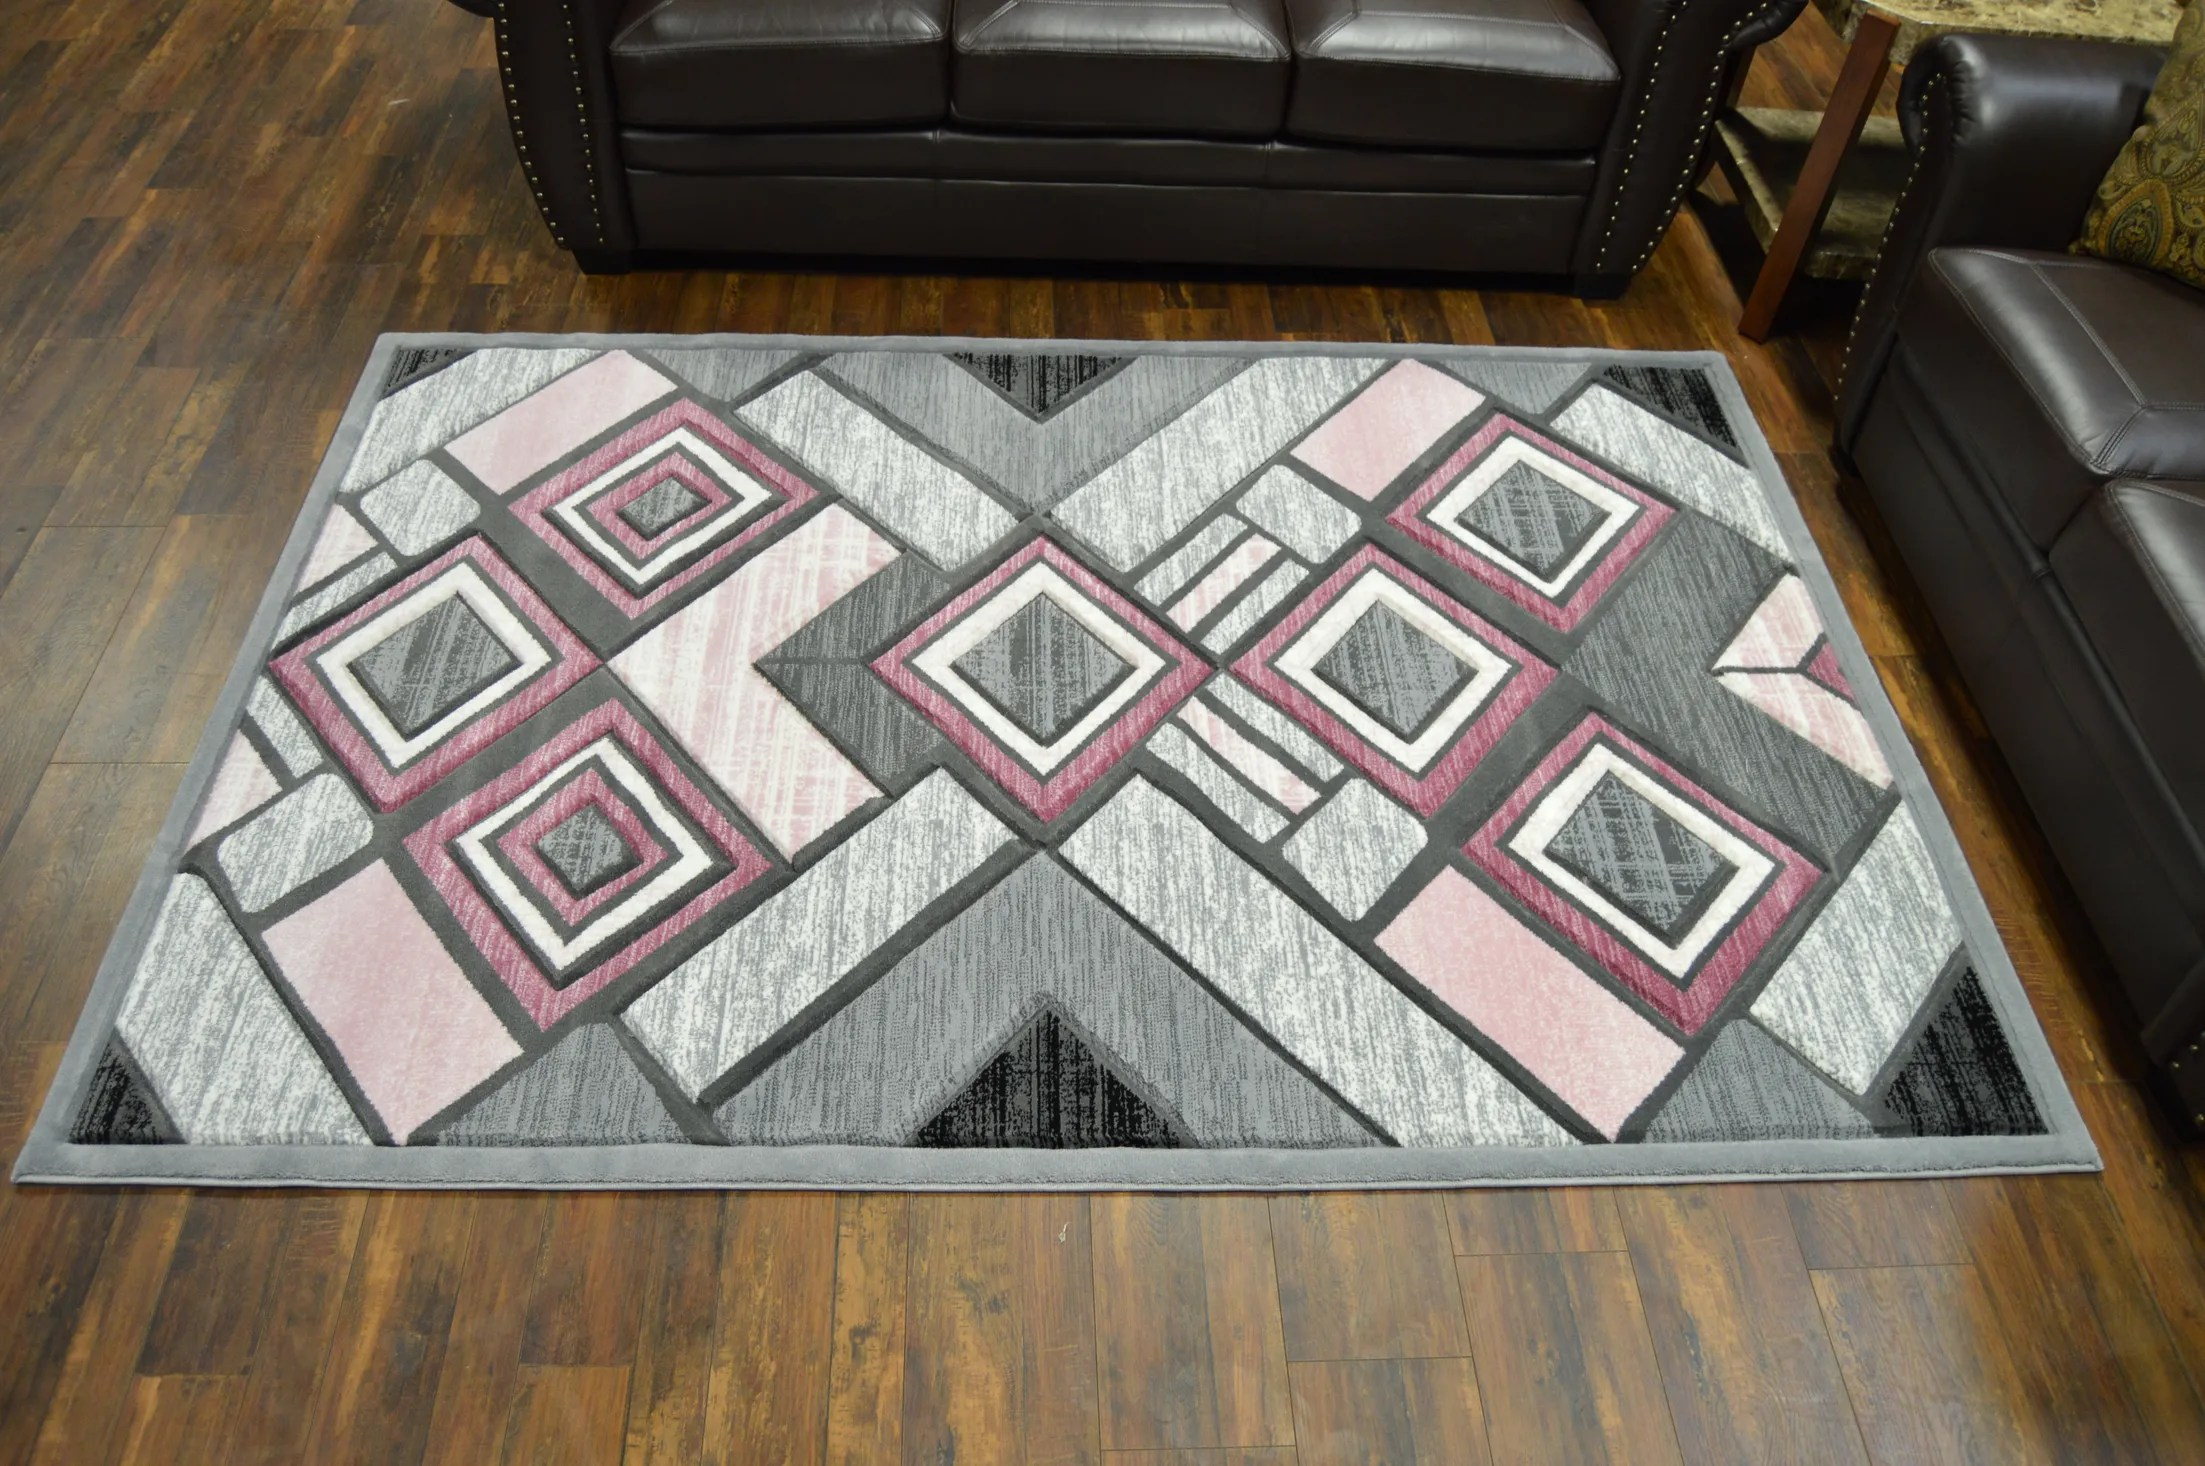 Serta Upholstery Wheatfield Sofa Area Rugs Mccampbell 3d Hand Carved Gray Pink Area Rug April 2019